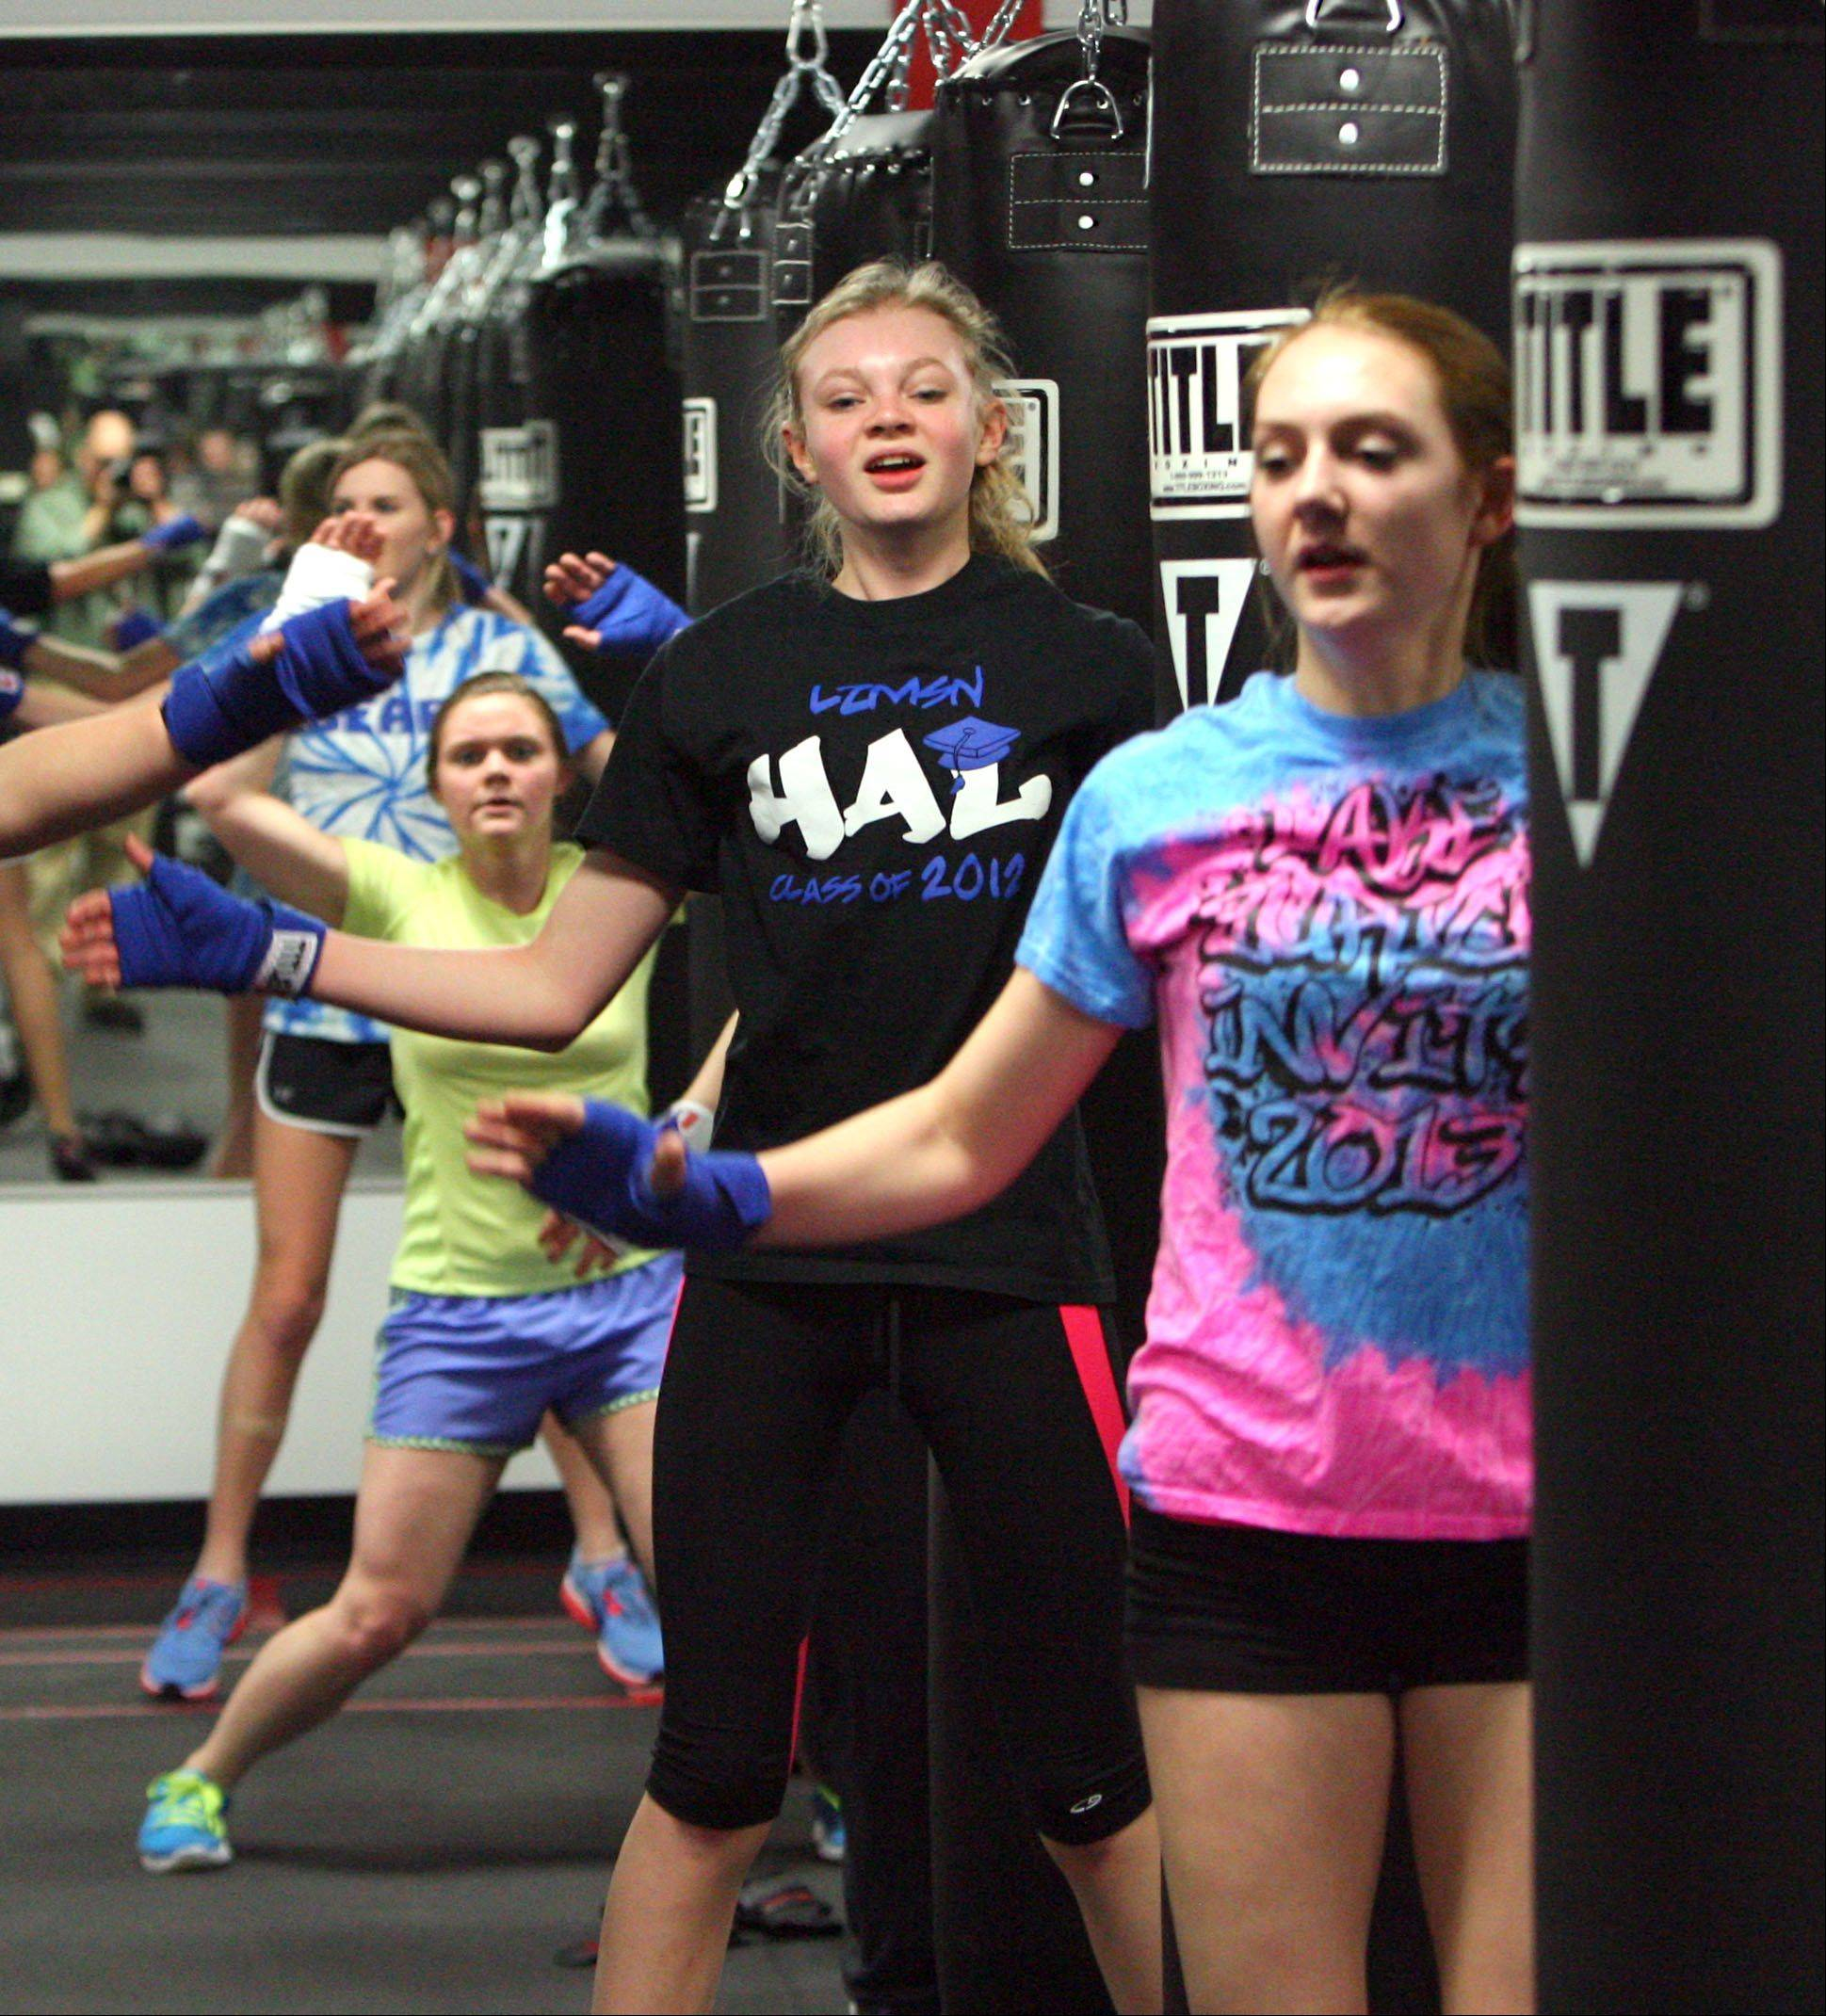 The Lake Zurich girls jv lacrosse club participated in a kick-boxing workout at Title Boxing Club in Lake Zurich Friday.